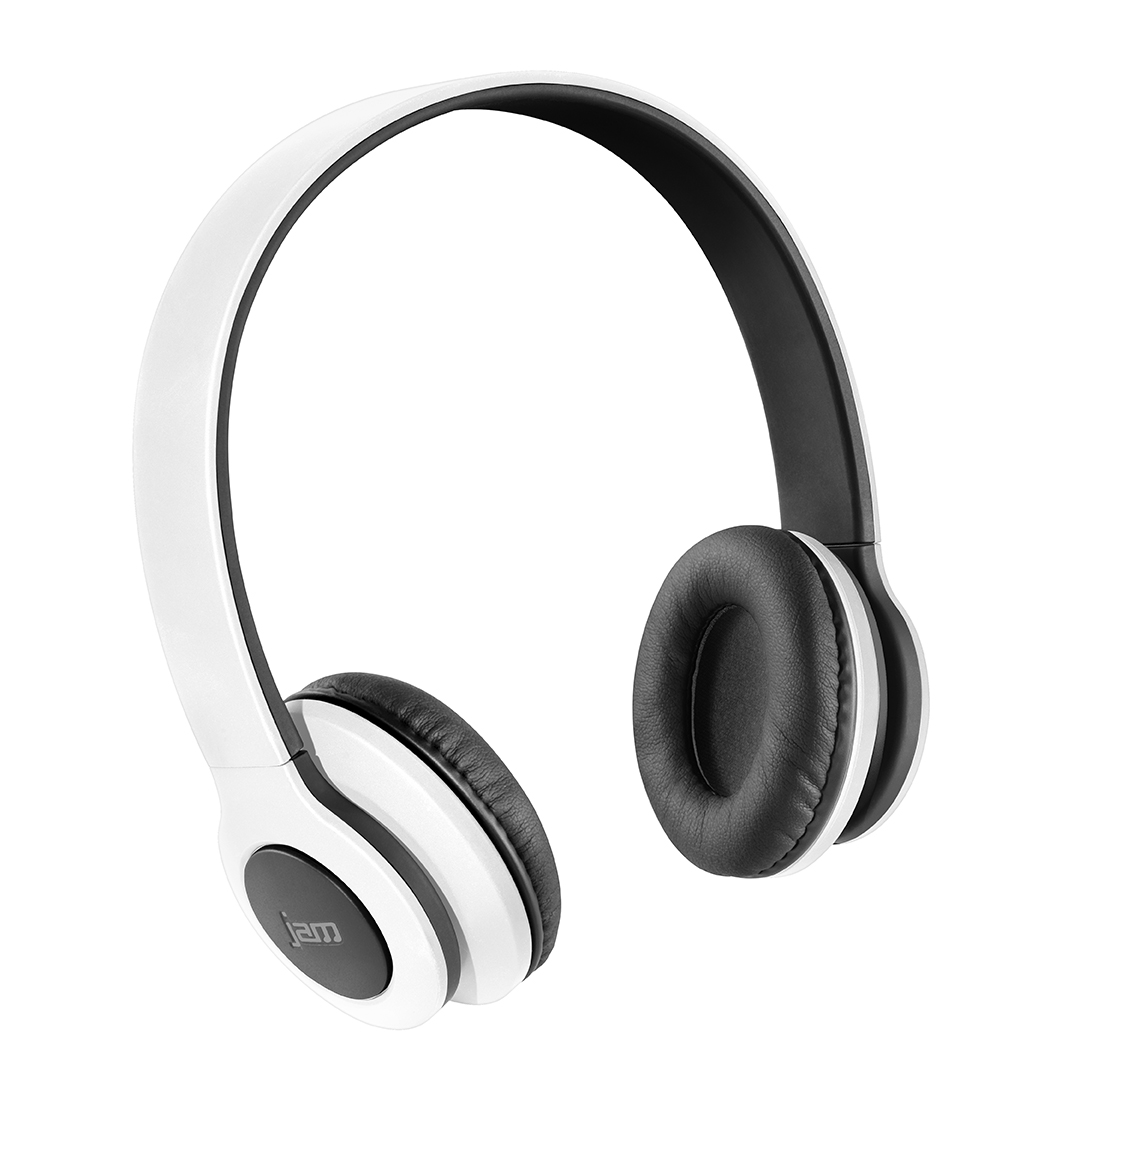 hmdx jam transit on ear wireless bluetooth headphones white hx hp420bk new ebay. Black Bedroom Furniture Sets. Home Design Ideas